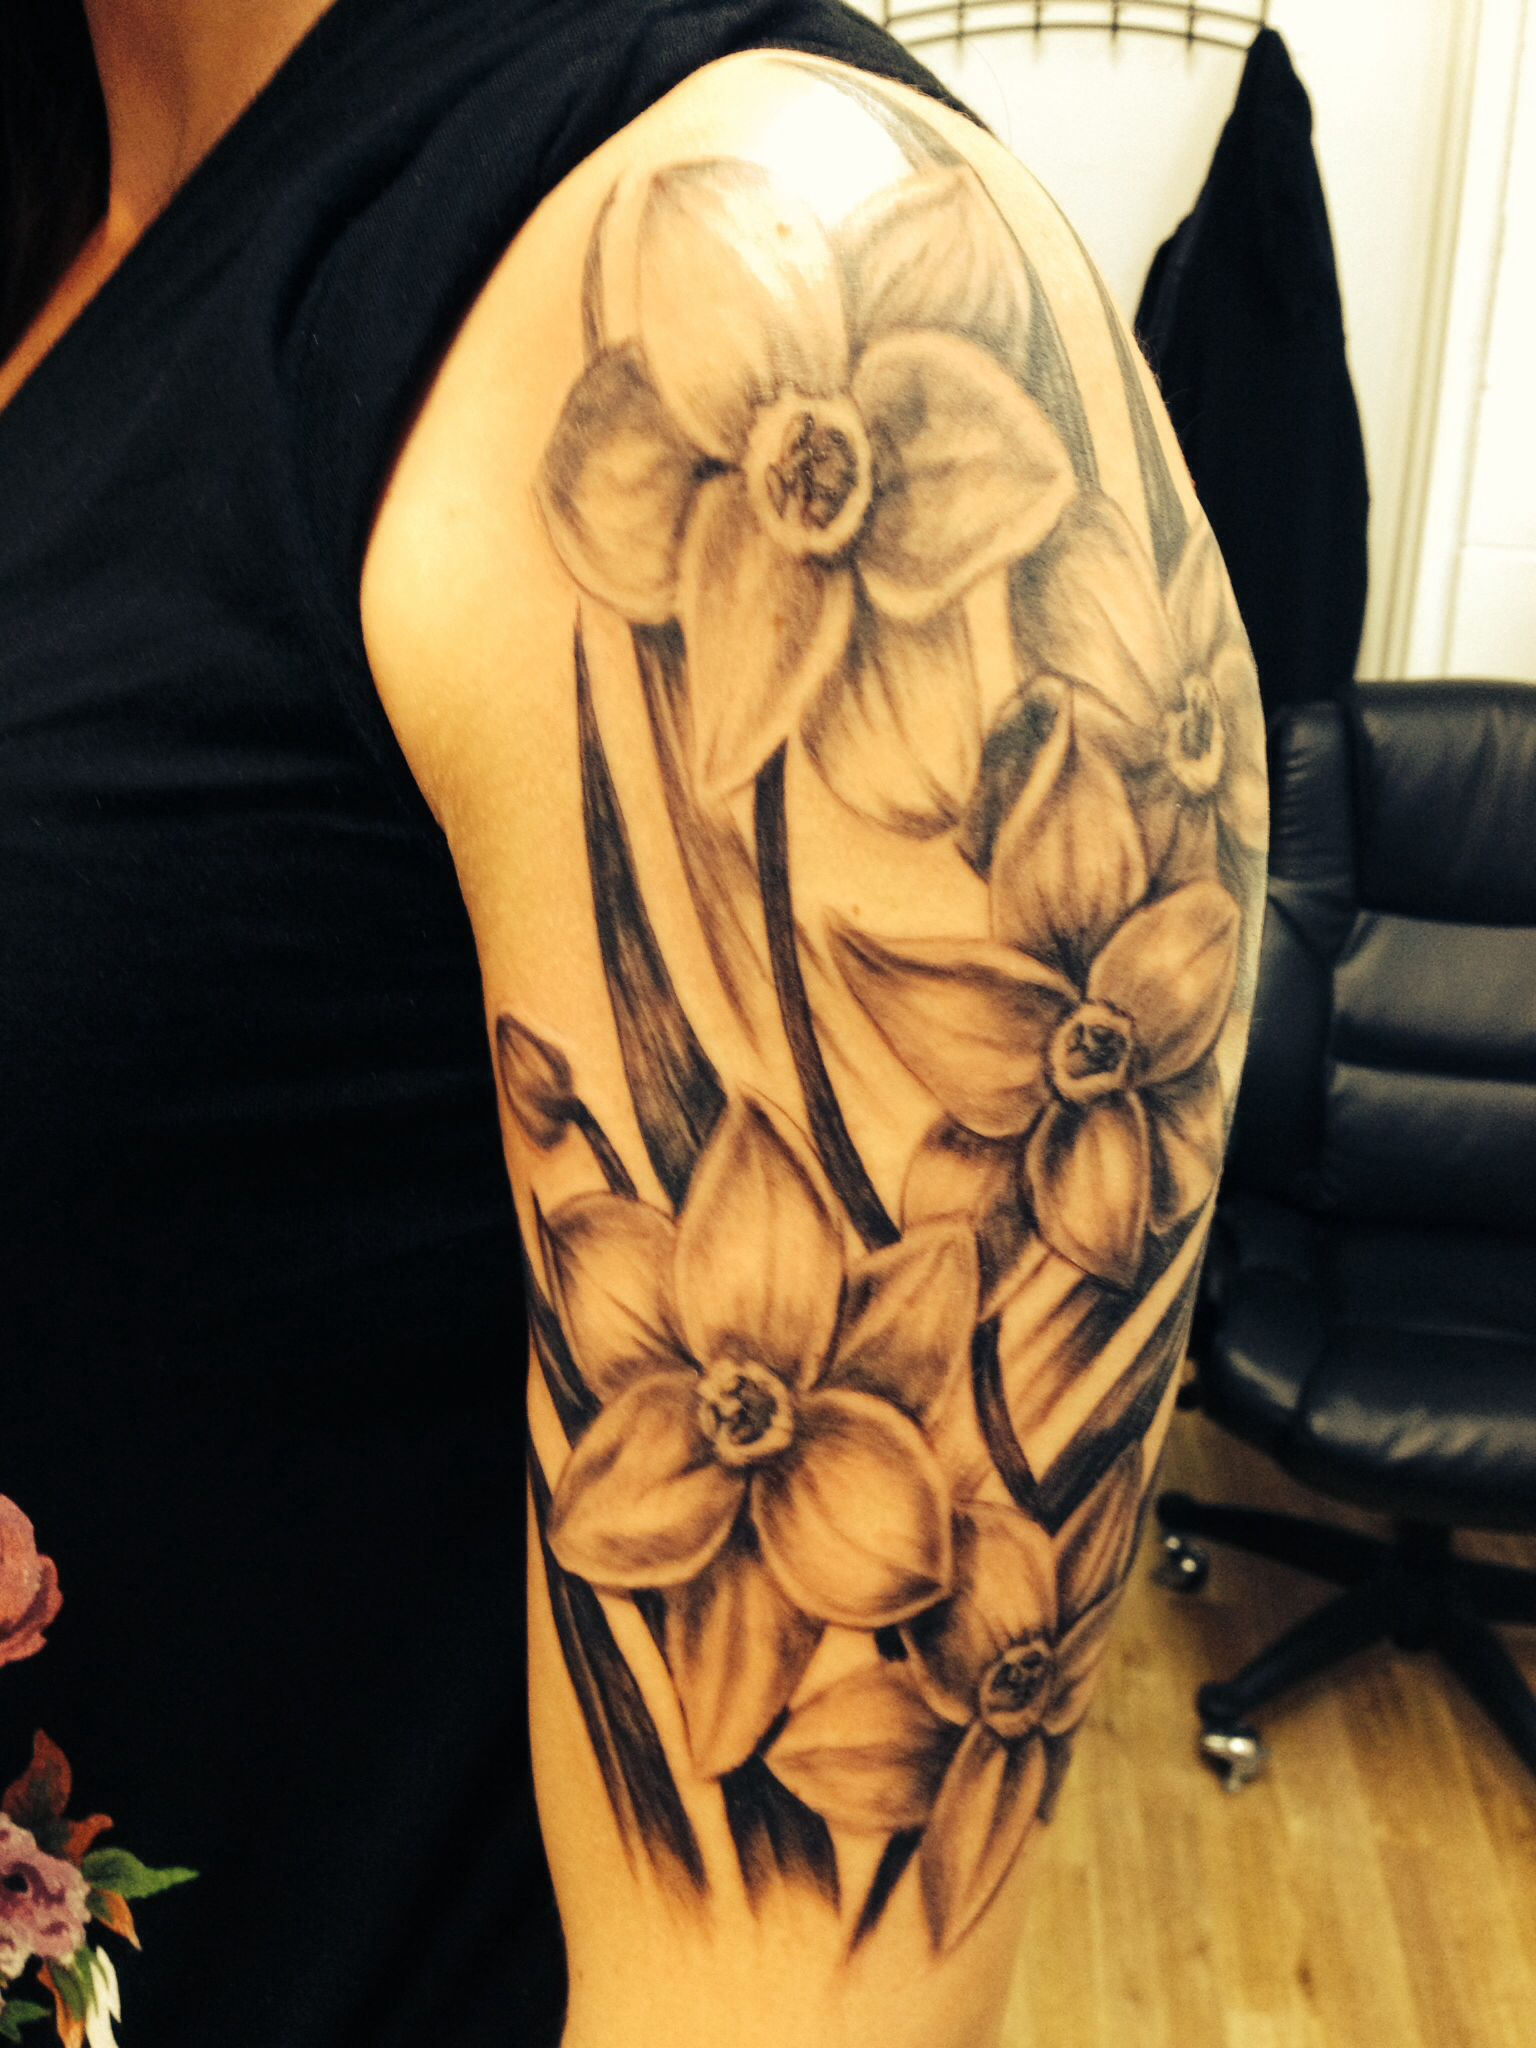 My memorial tattoo for my dad. December birth flower, the